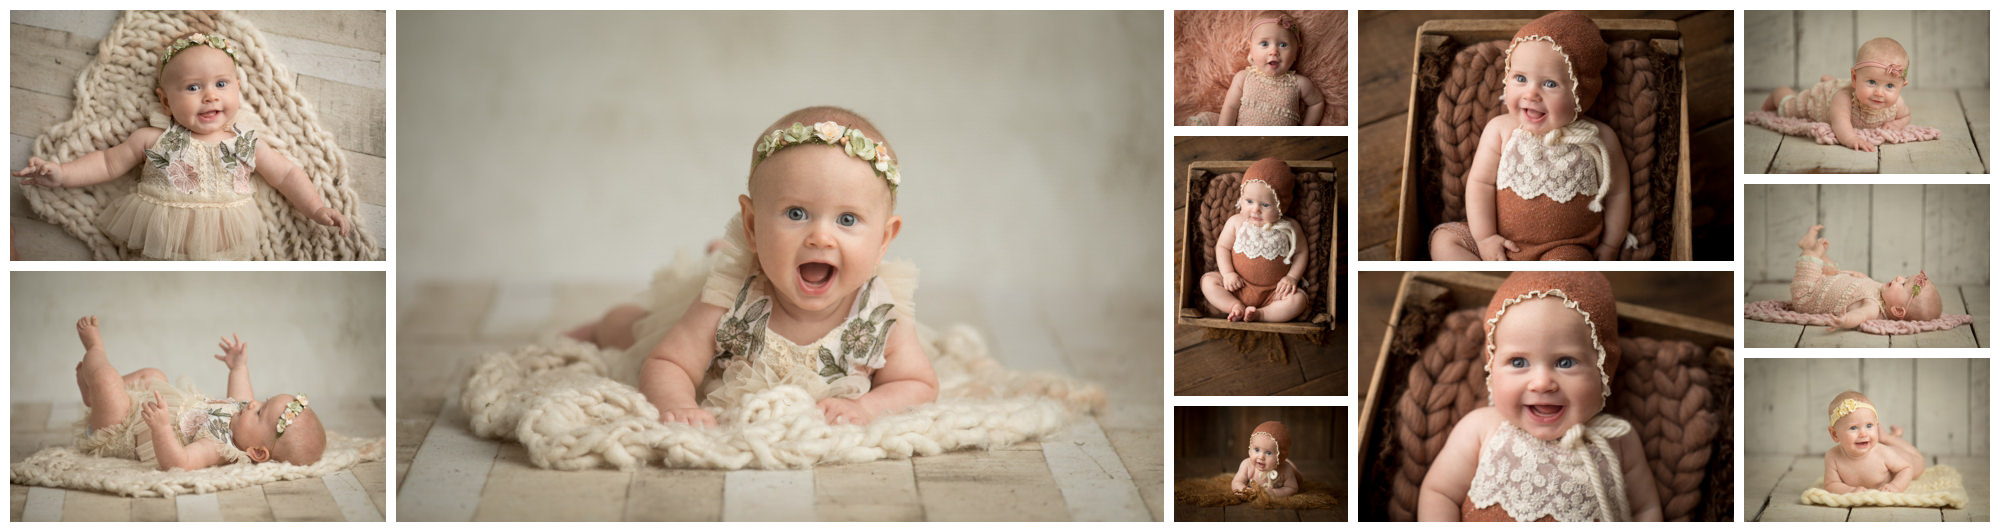 4 month old baby girl photographed by Nicole Everson Photography